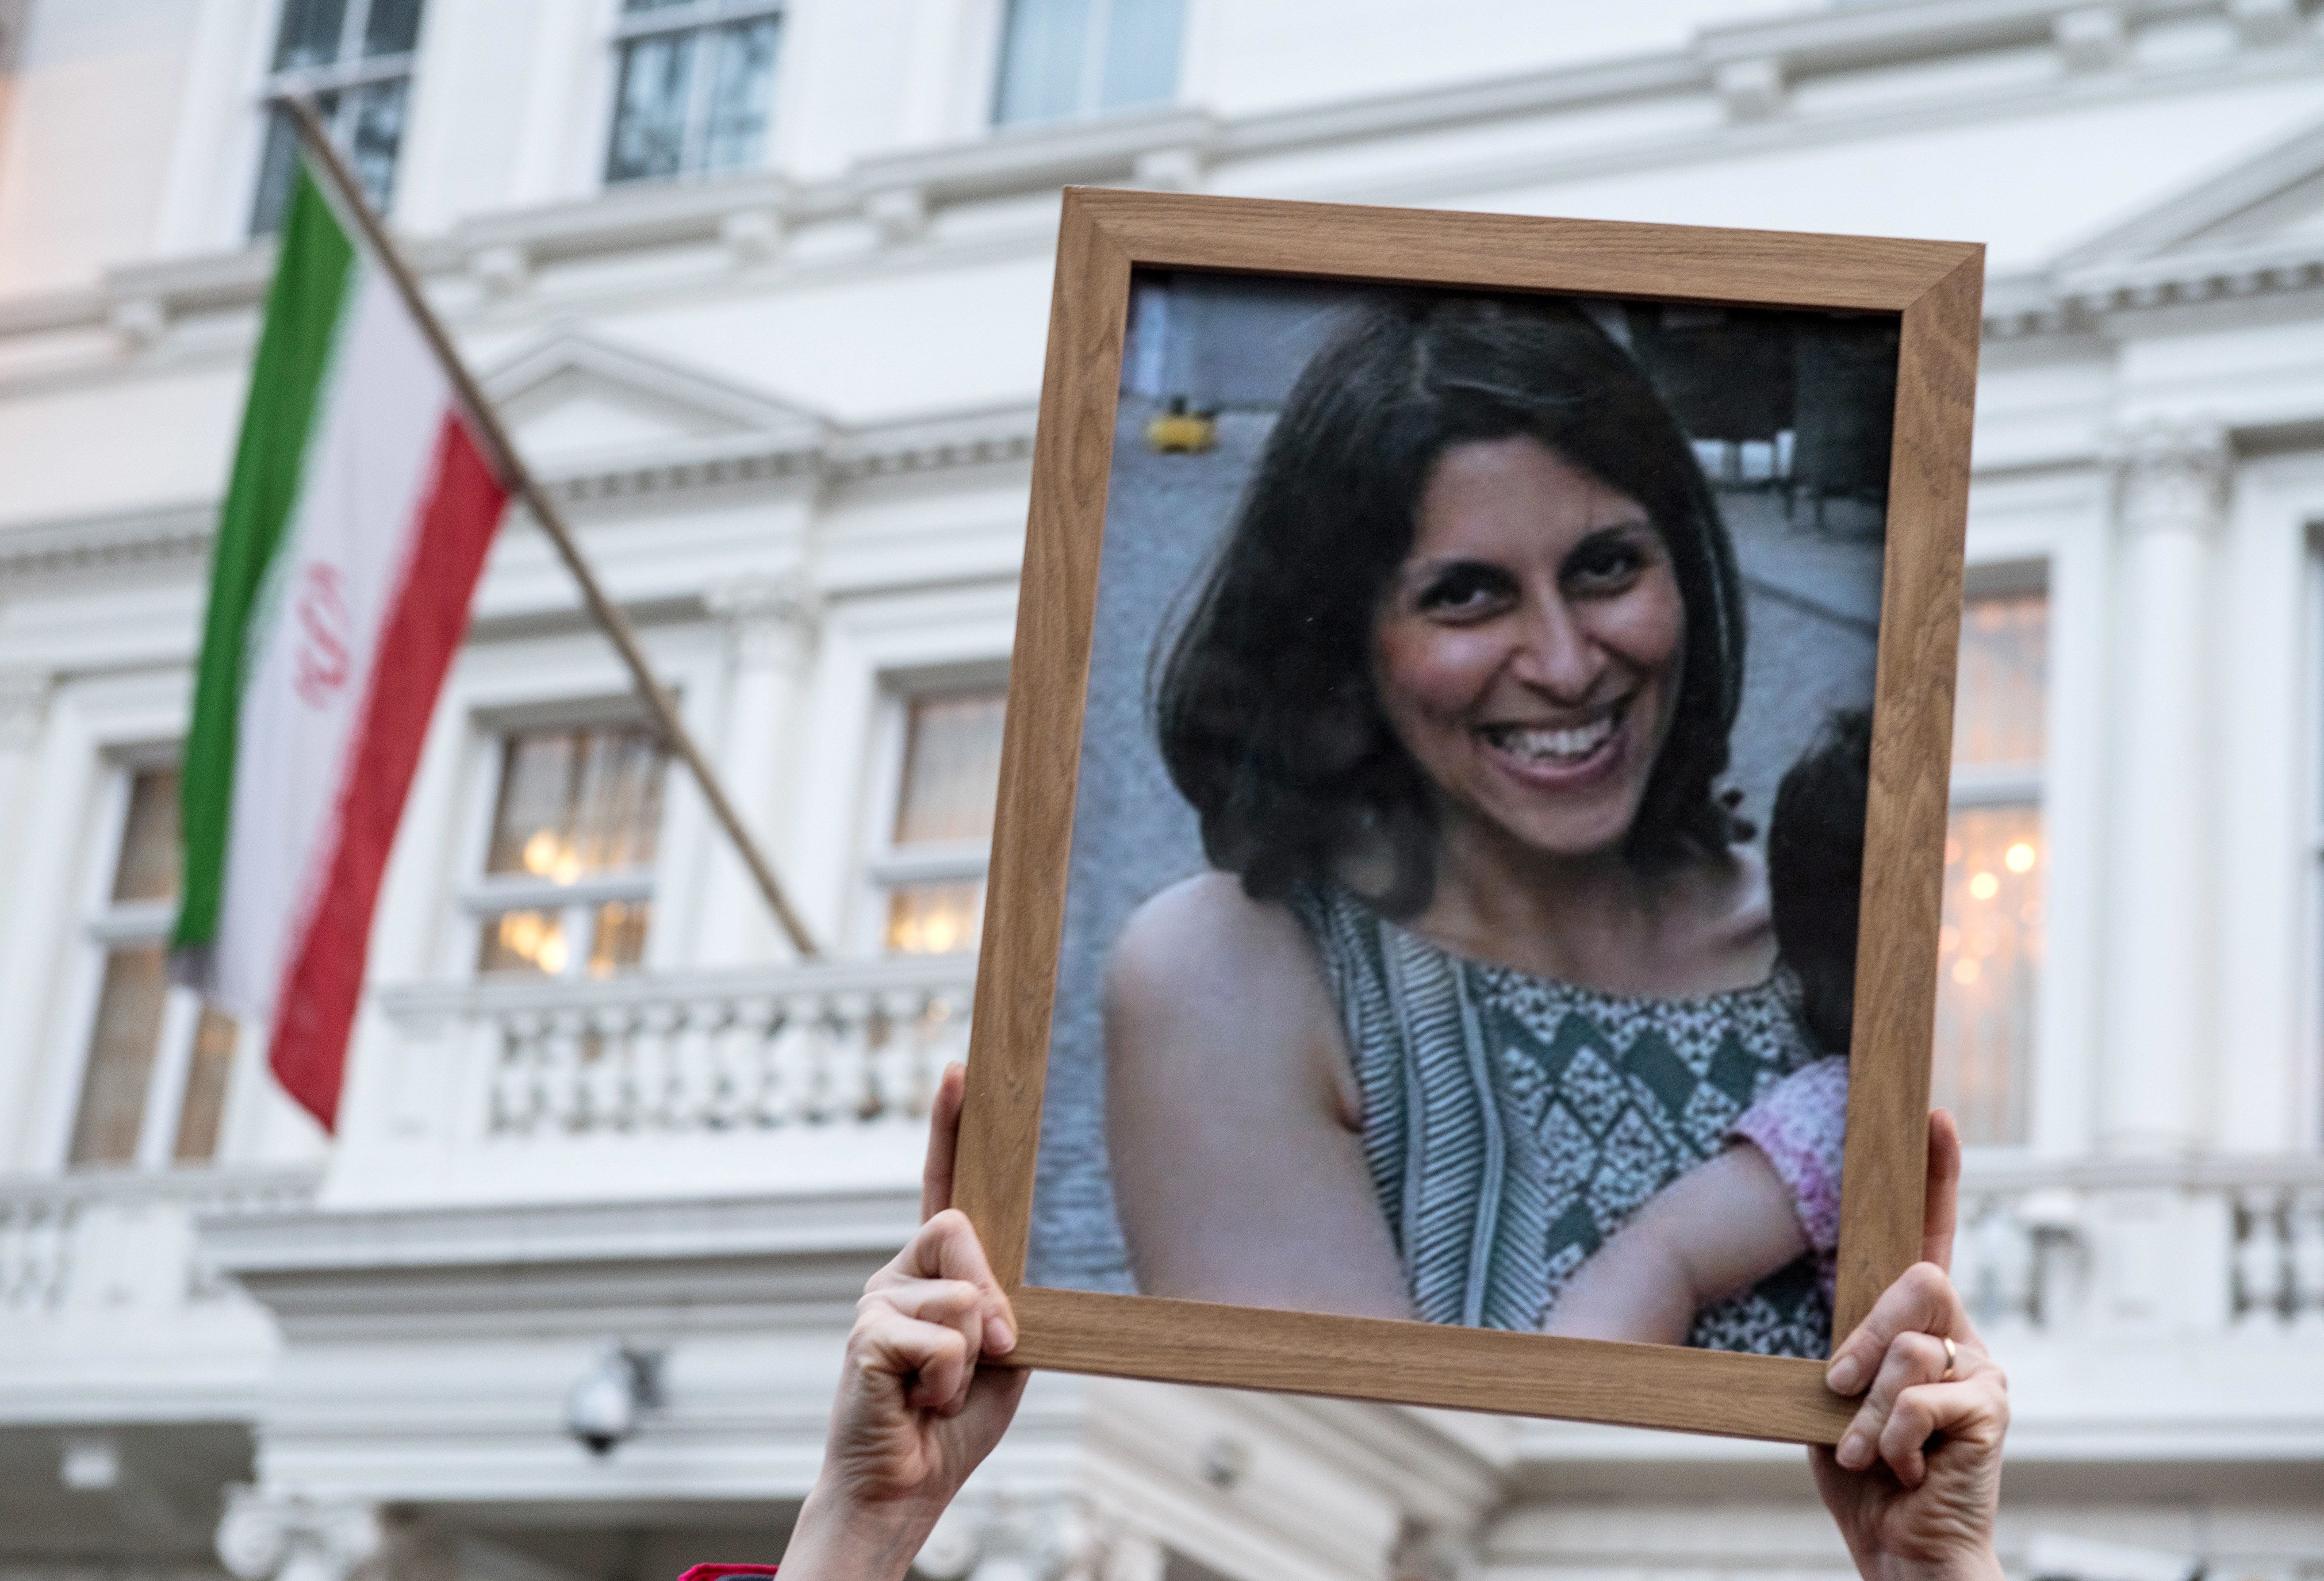 Nazanin Zaghari-Ratcliffe 'Faces Possible Fresh Charges In Iranian Court', Say